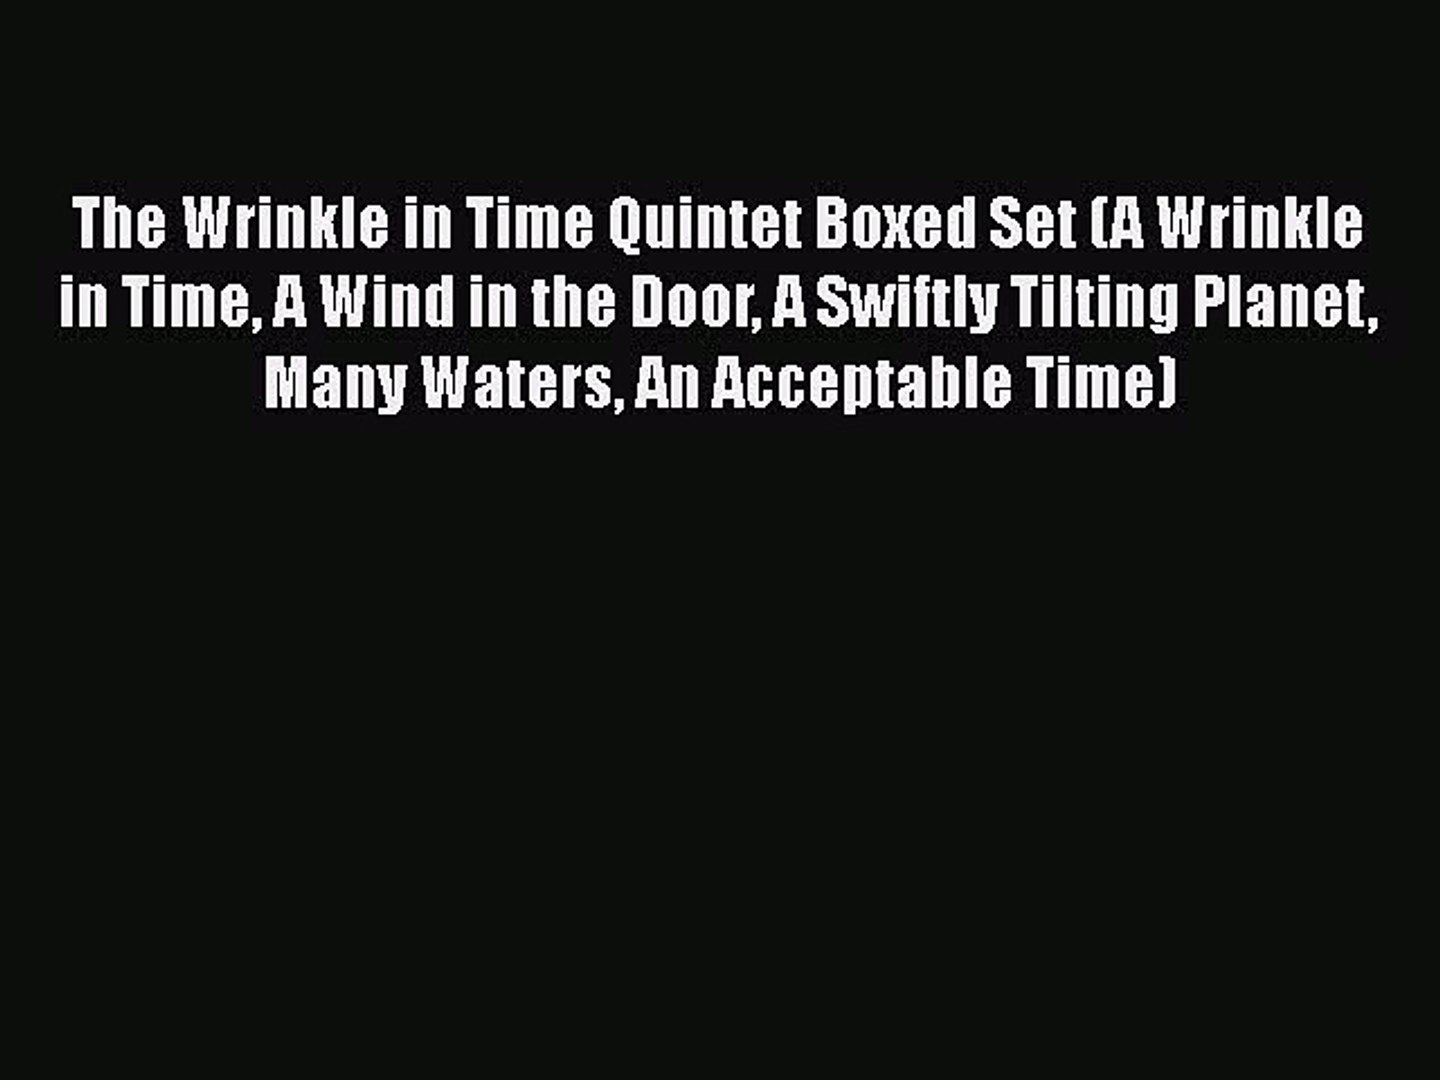 PDF The Wrinkle in Time Quintet Boxed Set (A Wrinkle in Time A Wind in the Door A Swiftly Tilting